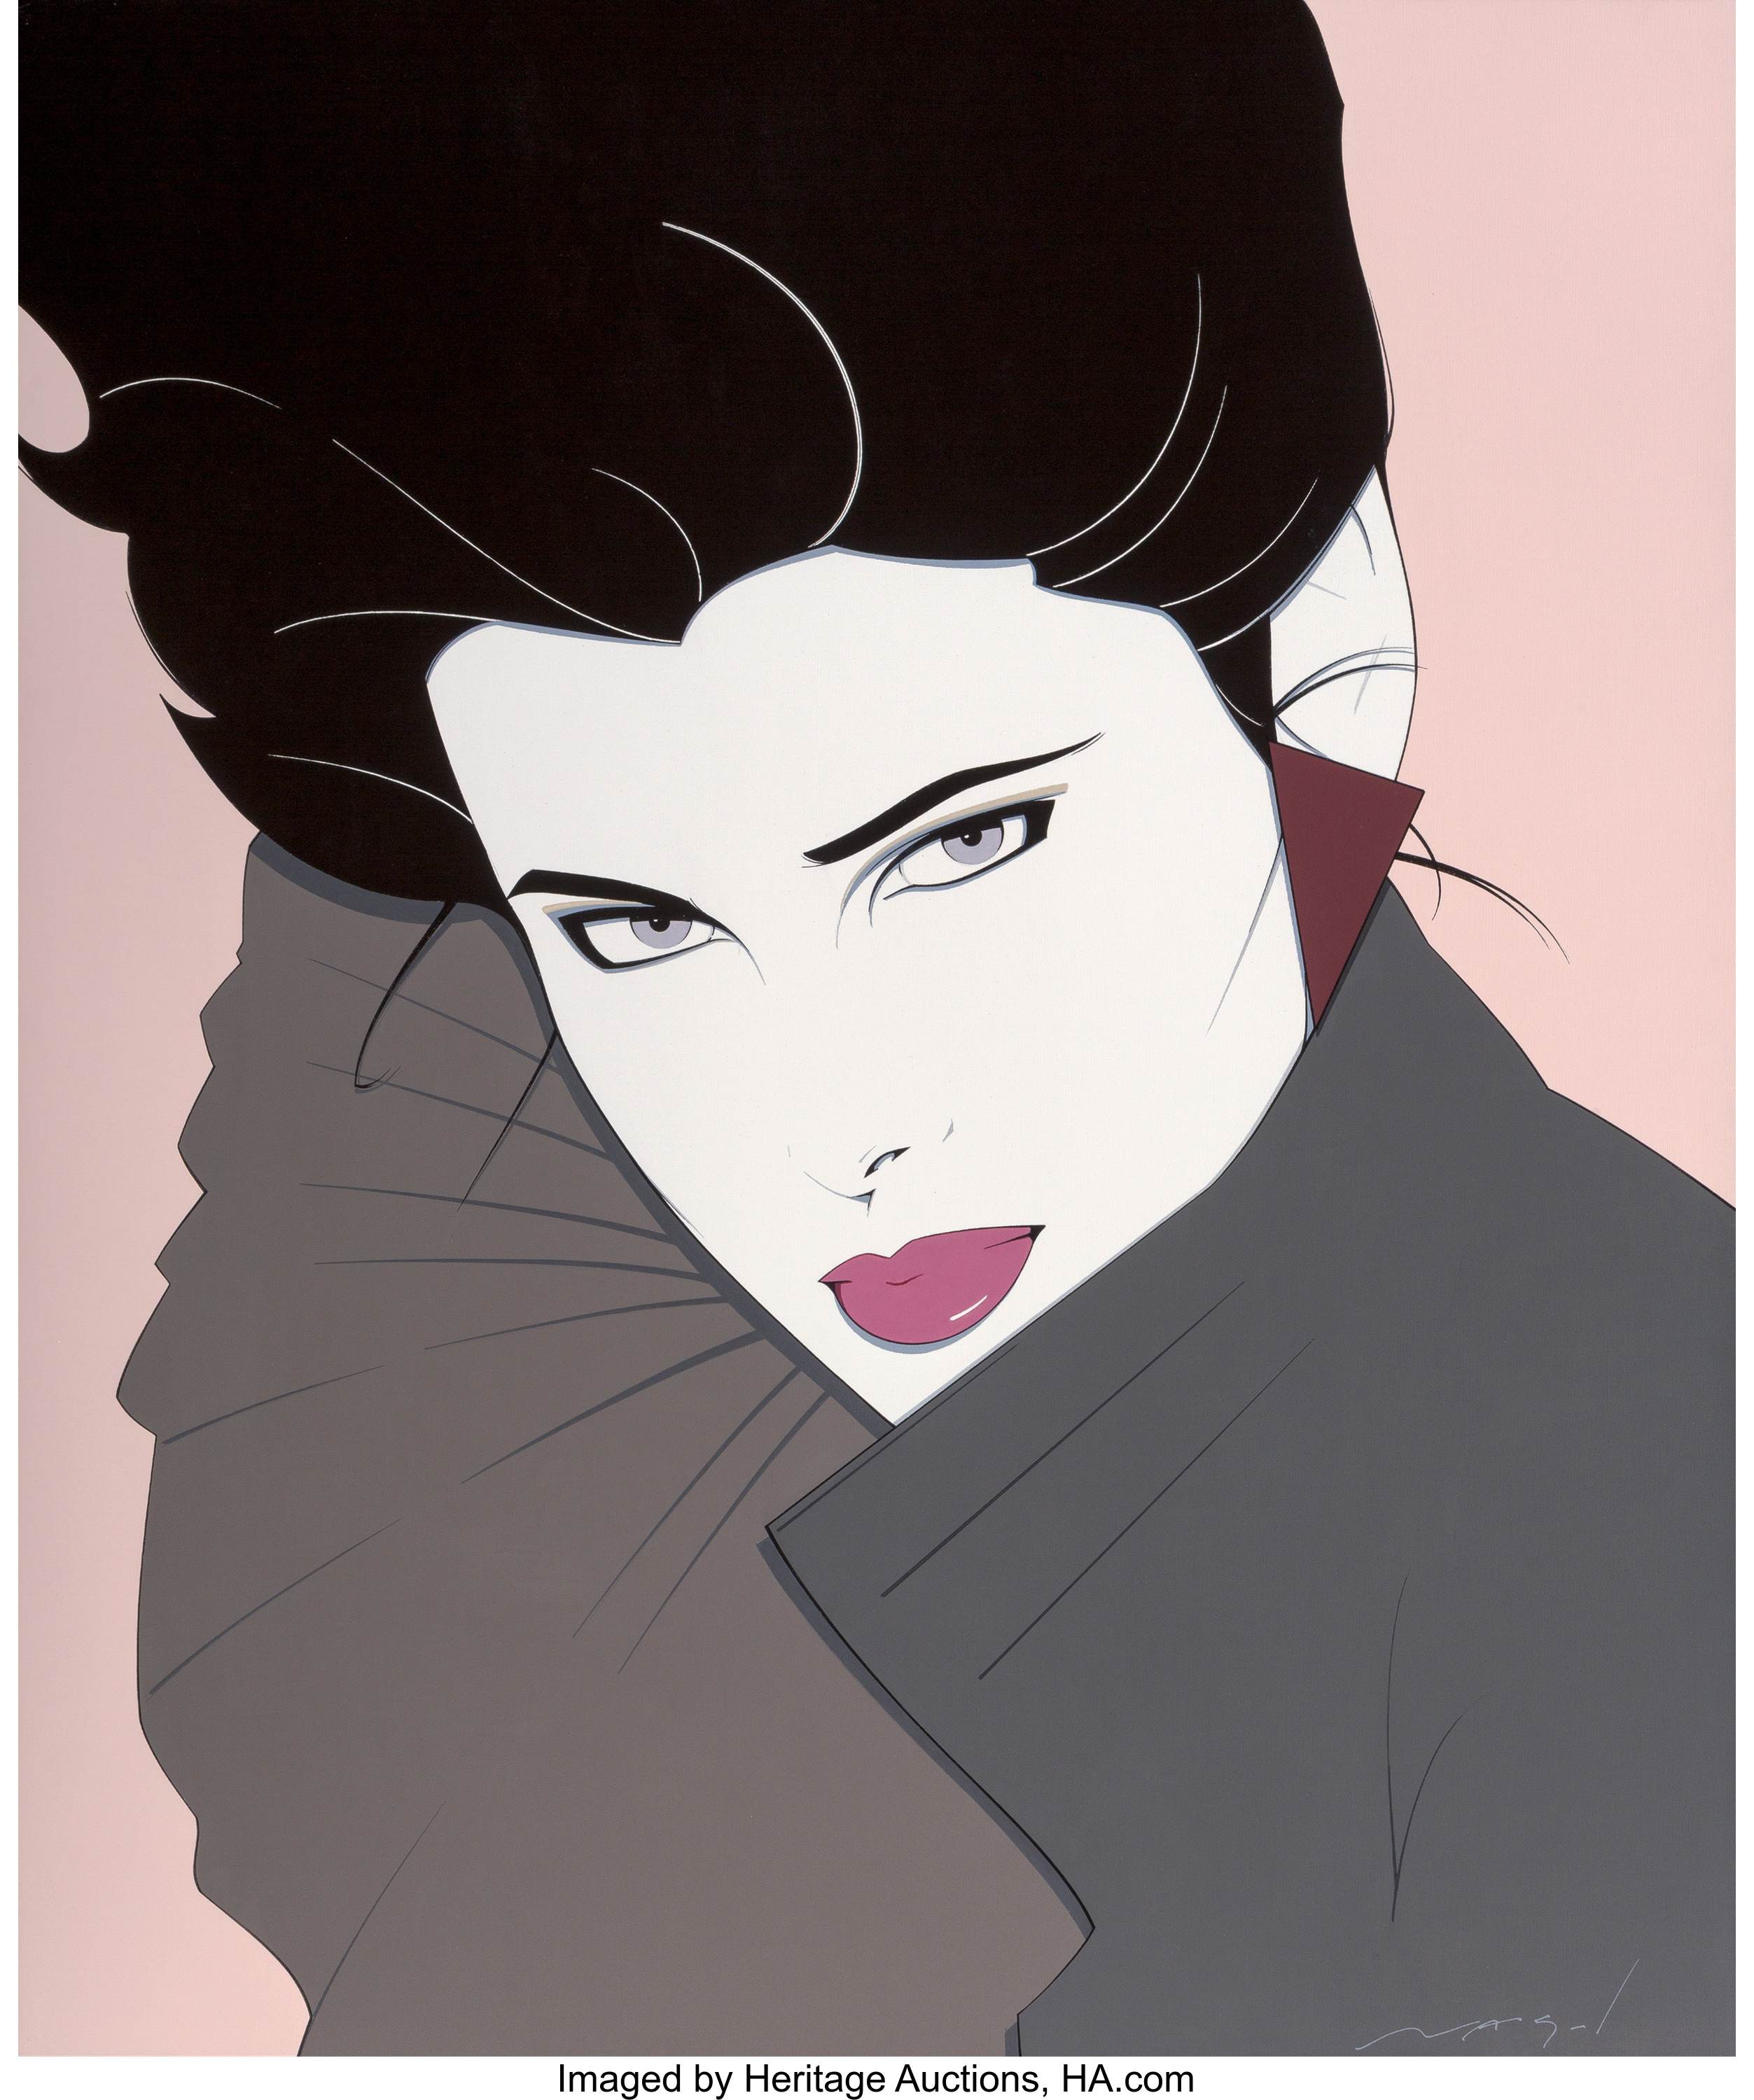 Bold, a circa 1980s painting by Patrick Nagel. Heritage Auctions sold it on October 13, 2017, for $200,000--an auction record for the artist.